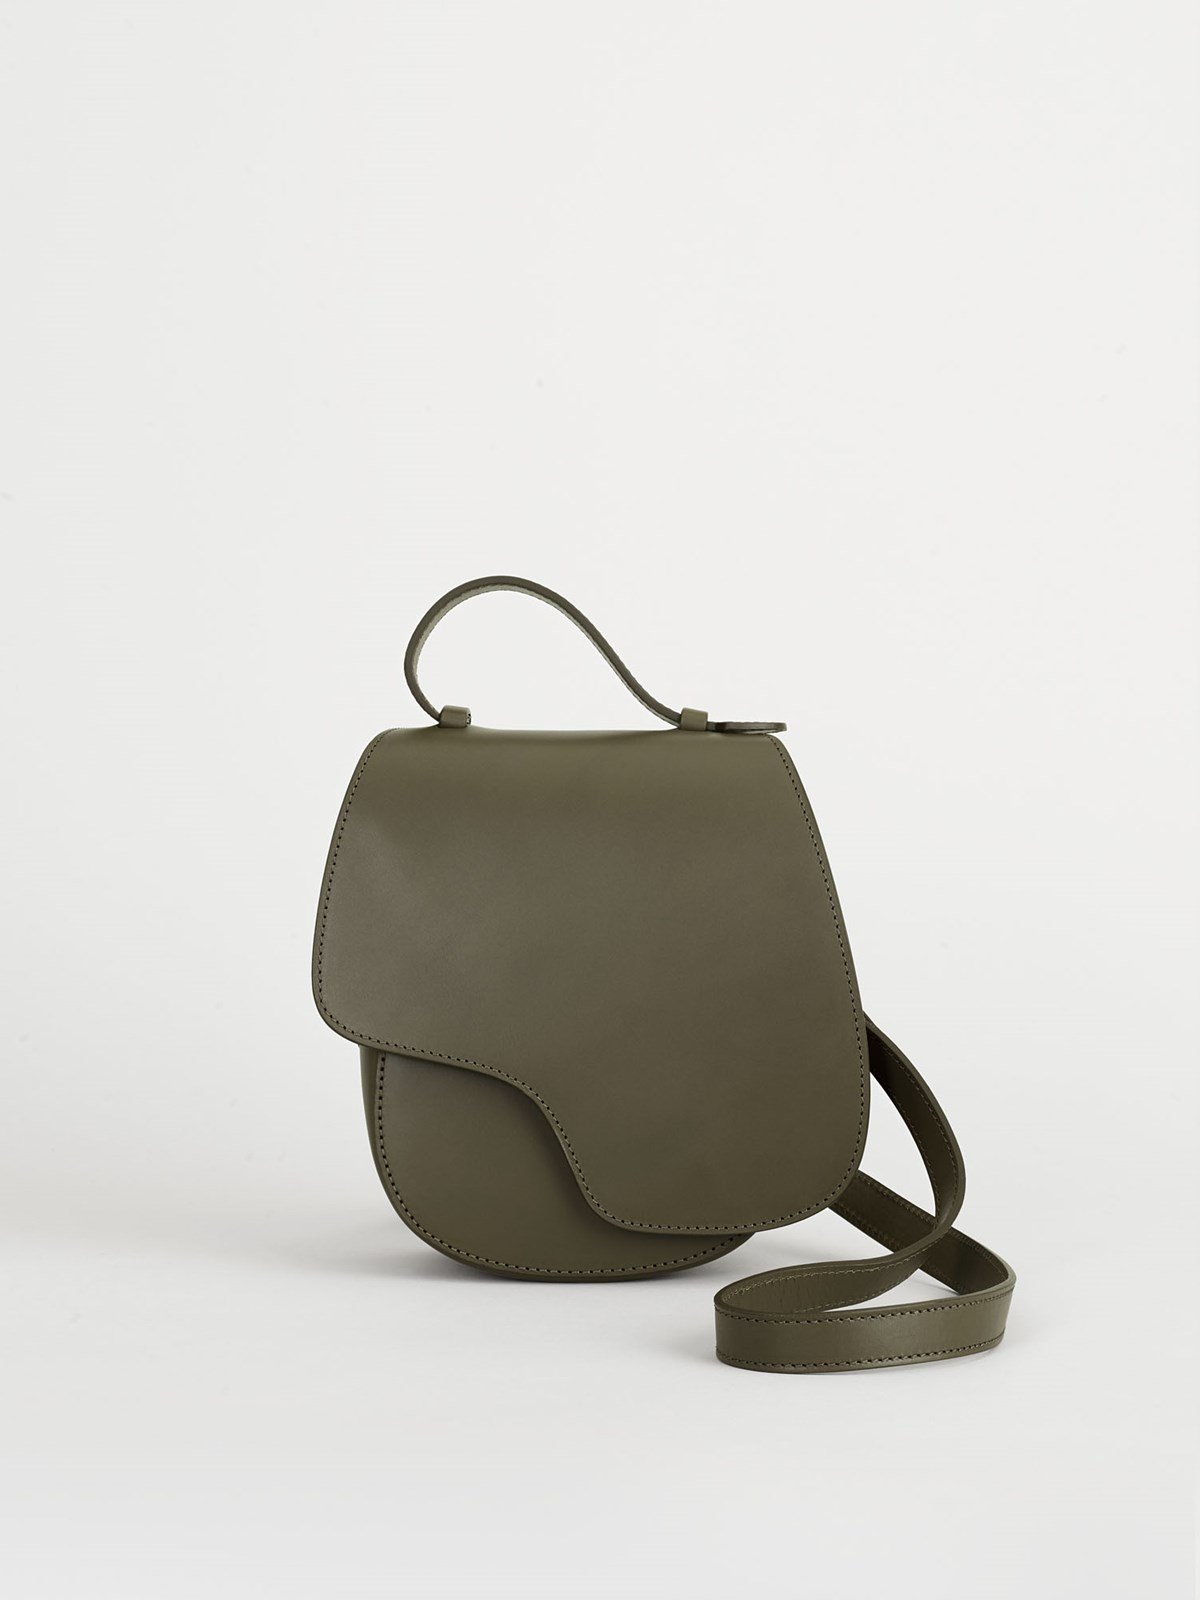 Carrara Turtle Crossbody bag